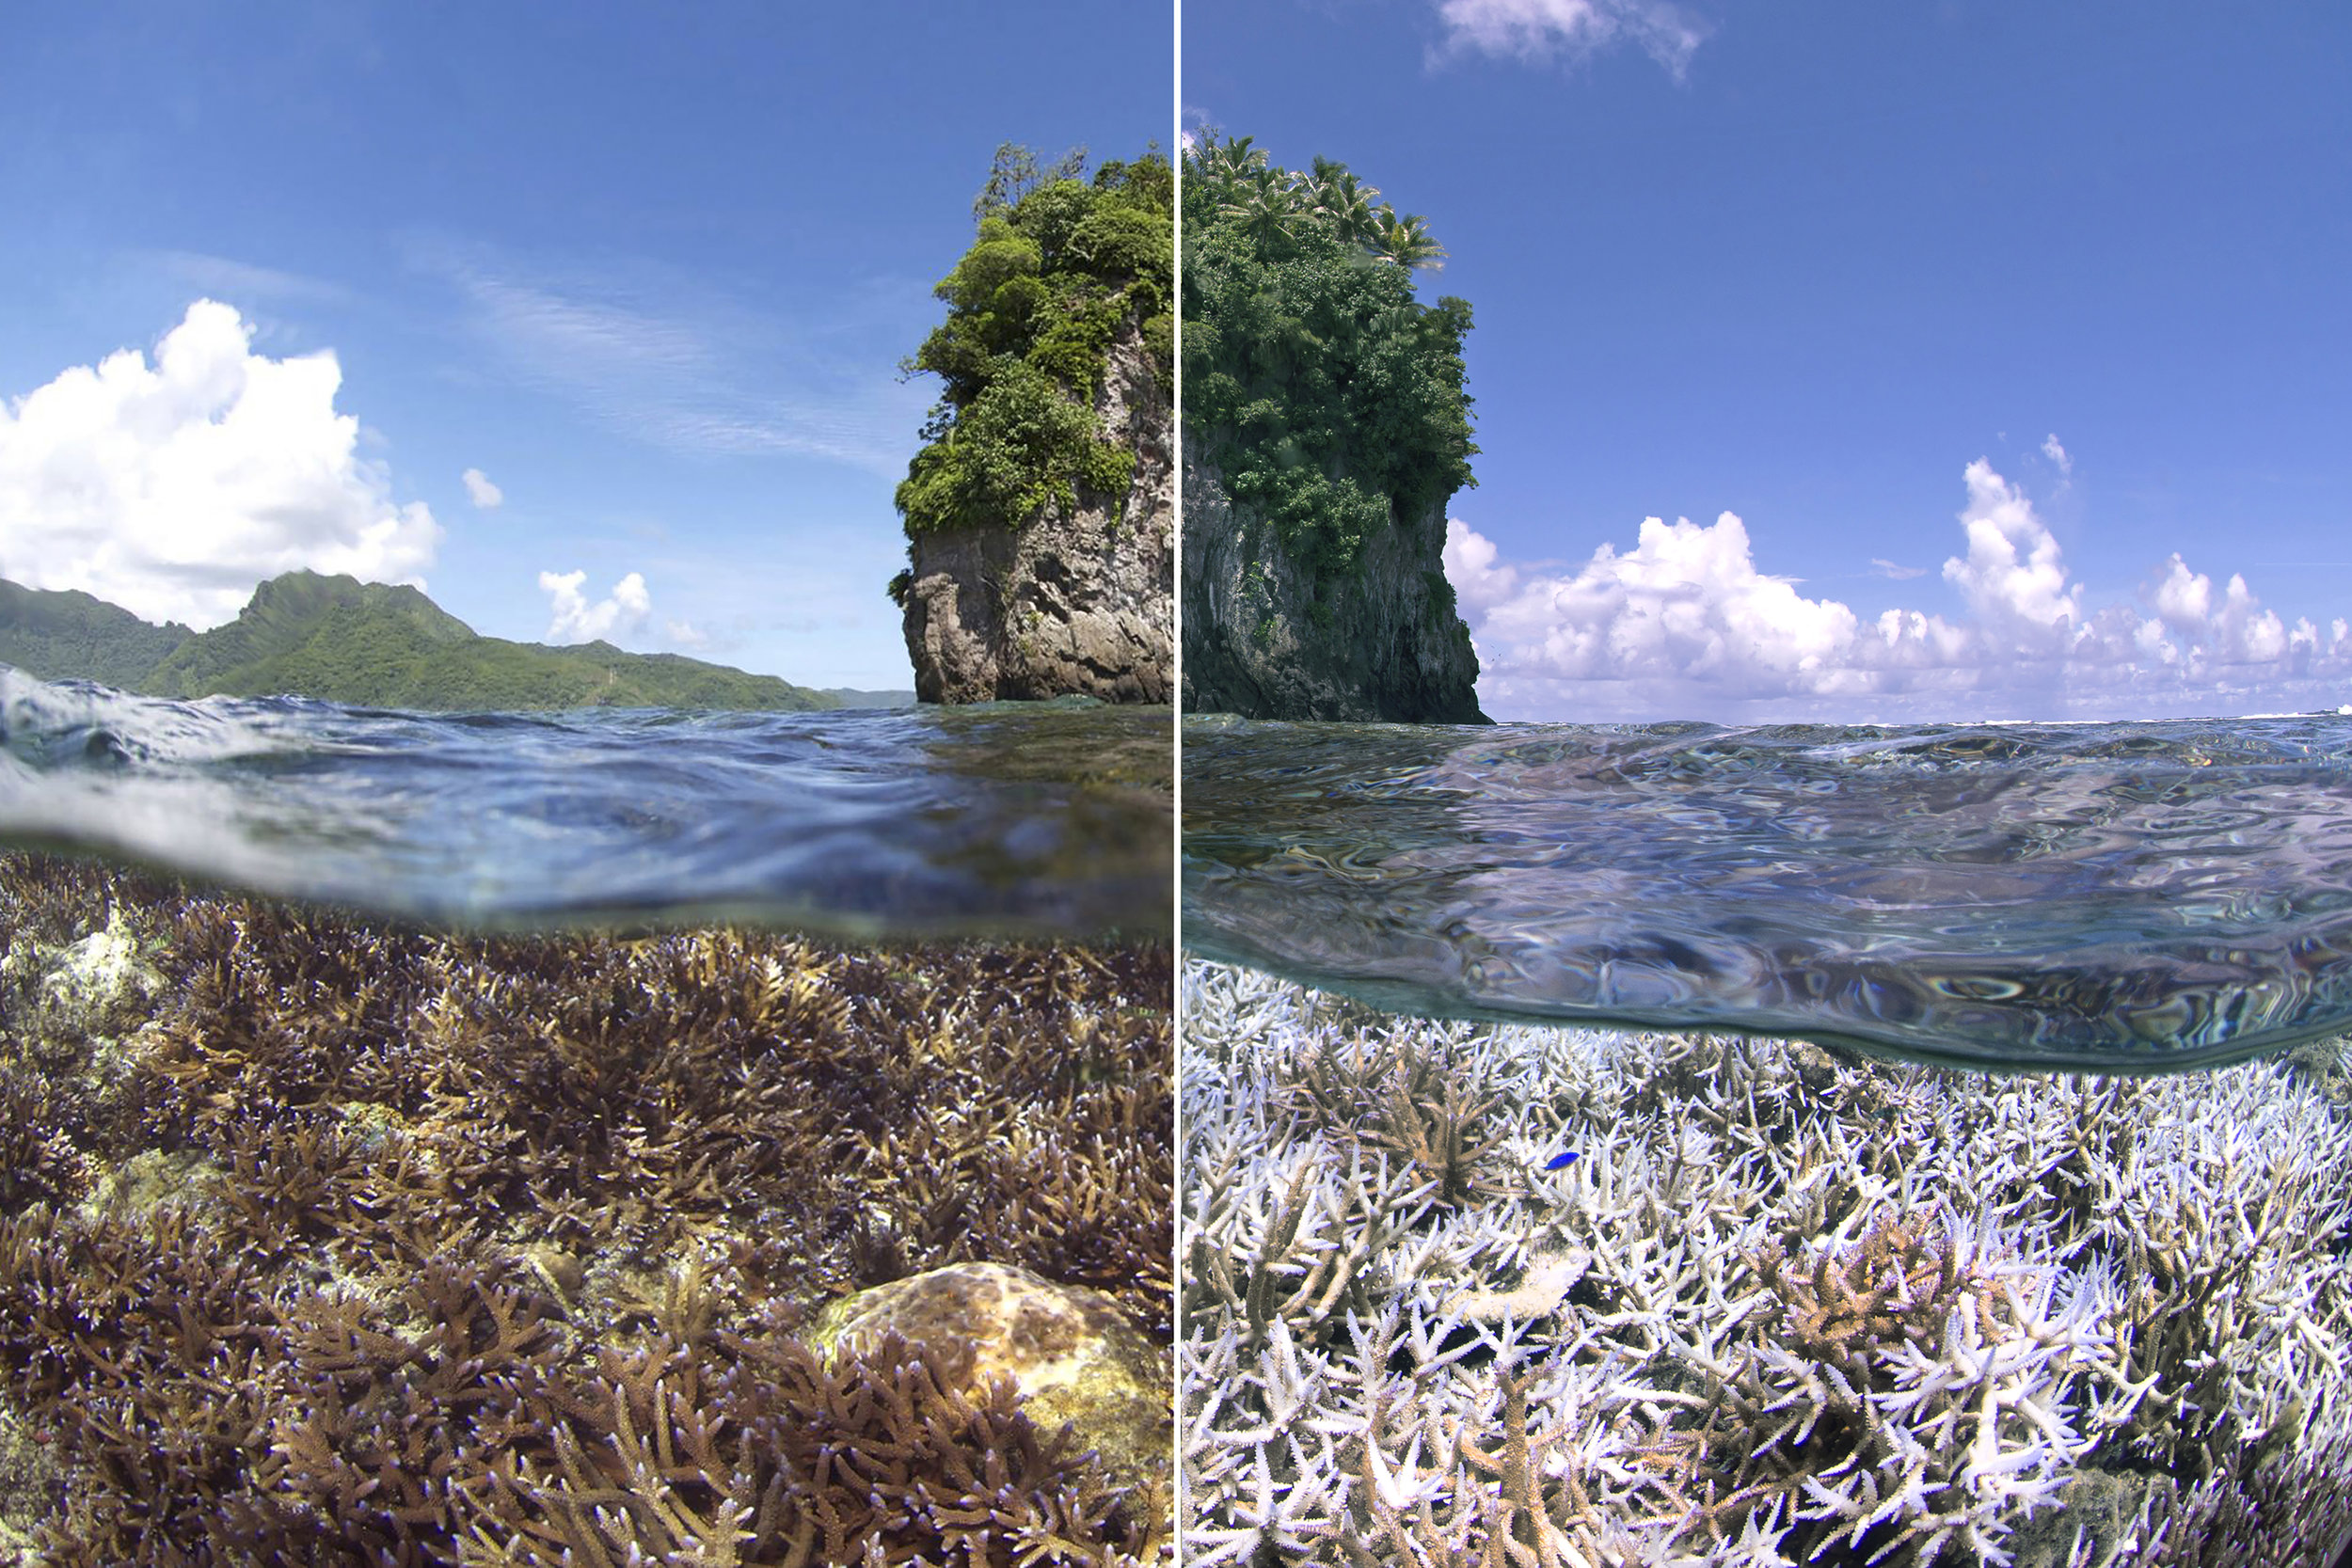 COMBINED BEfore & after - american samoa credit: the ocean agency / xl catlin seaview survey